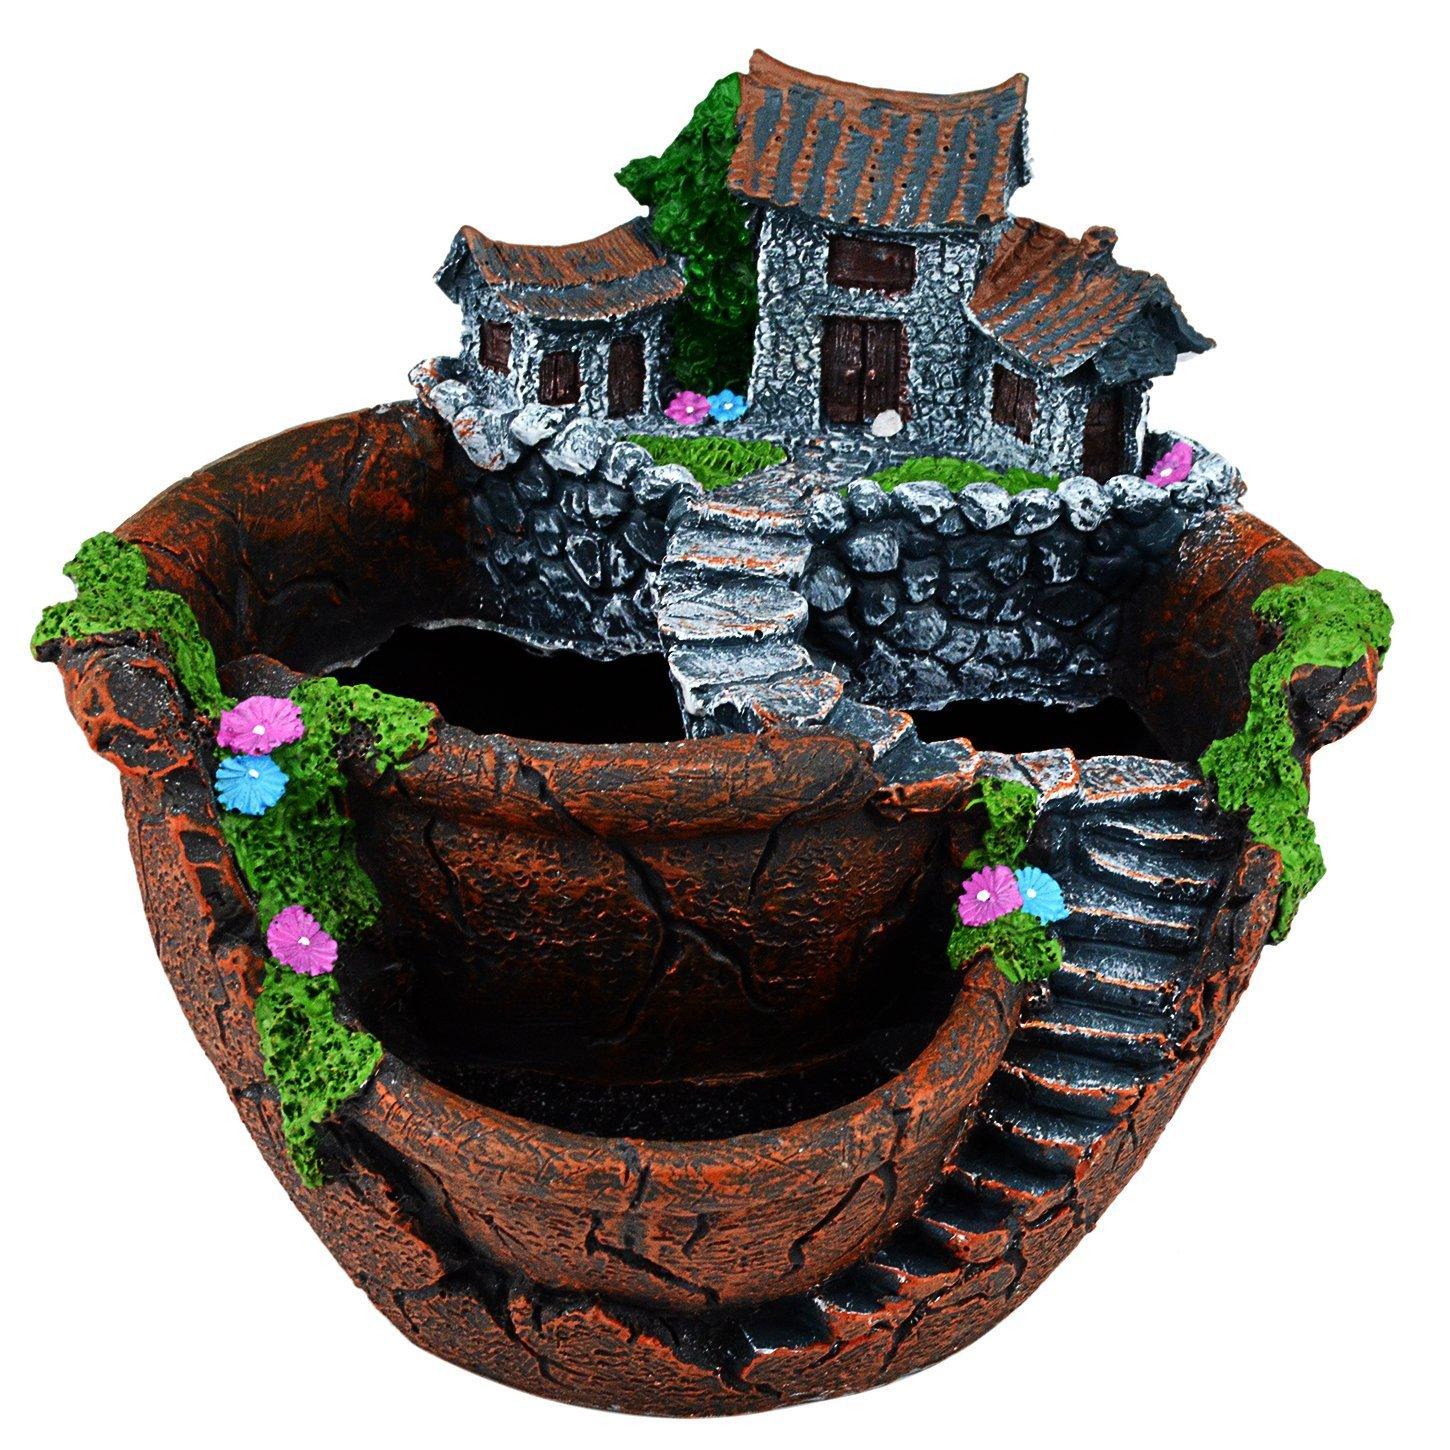 cnomg Pot Creative Plants DIY Container Pot Mini Fairy Garden Flower Plants and Sweet House for Decoration, Holiday Decoration, Indoor Decoration and Gift (Brown)